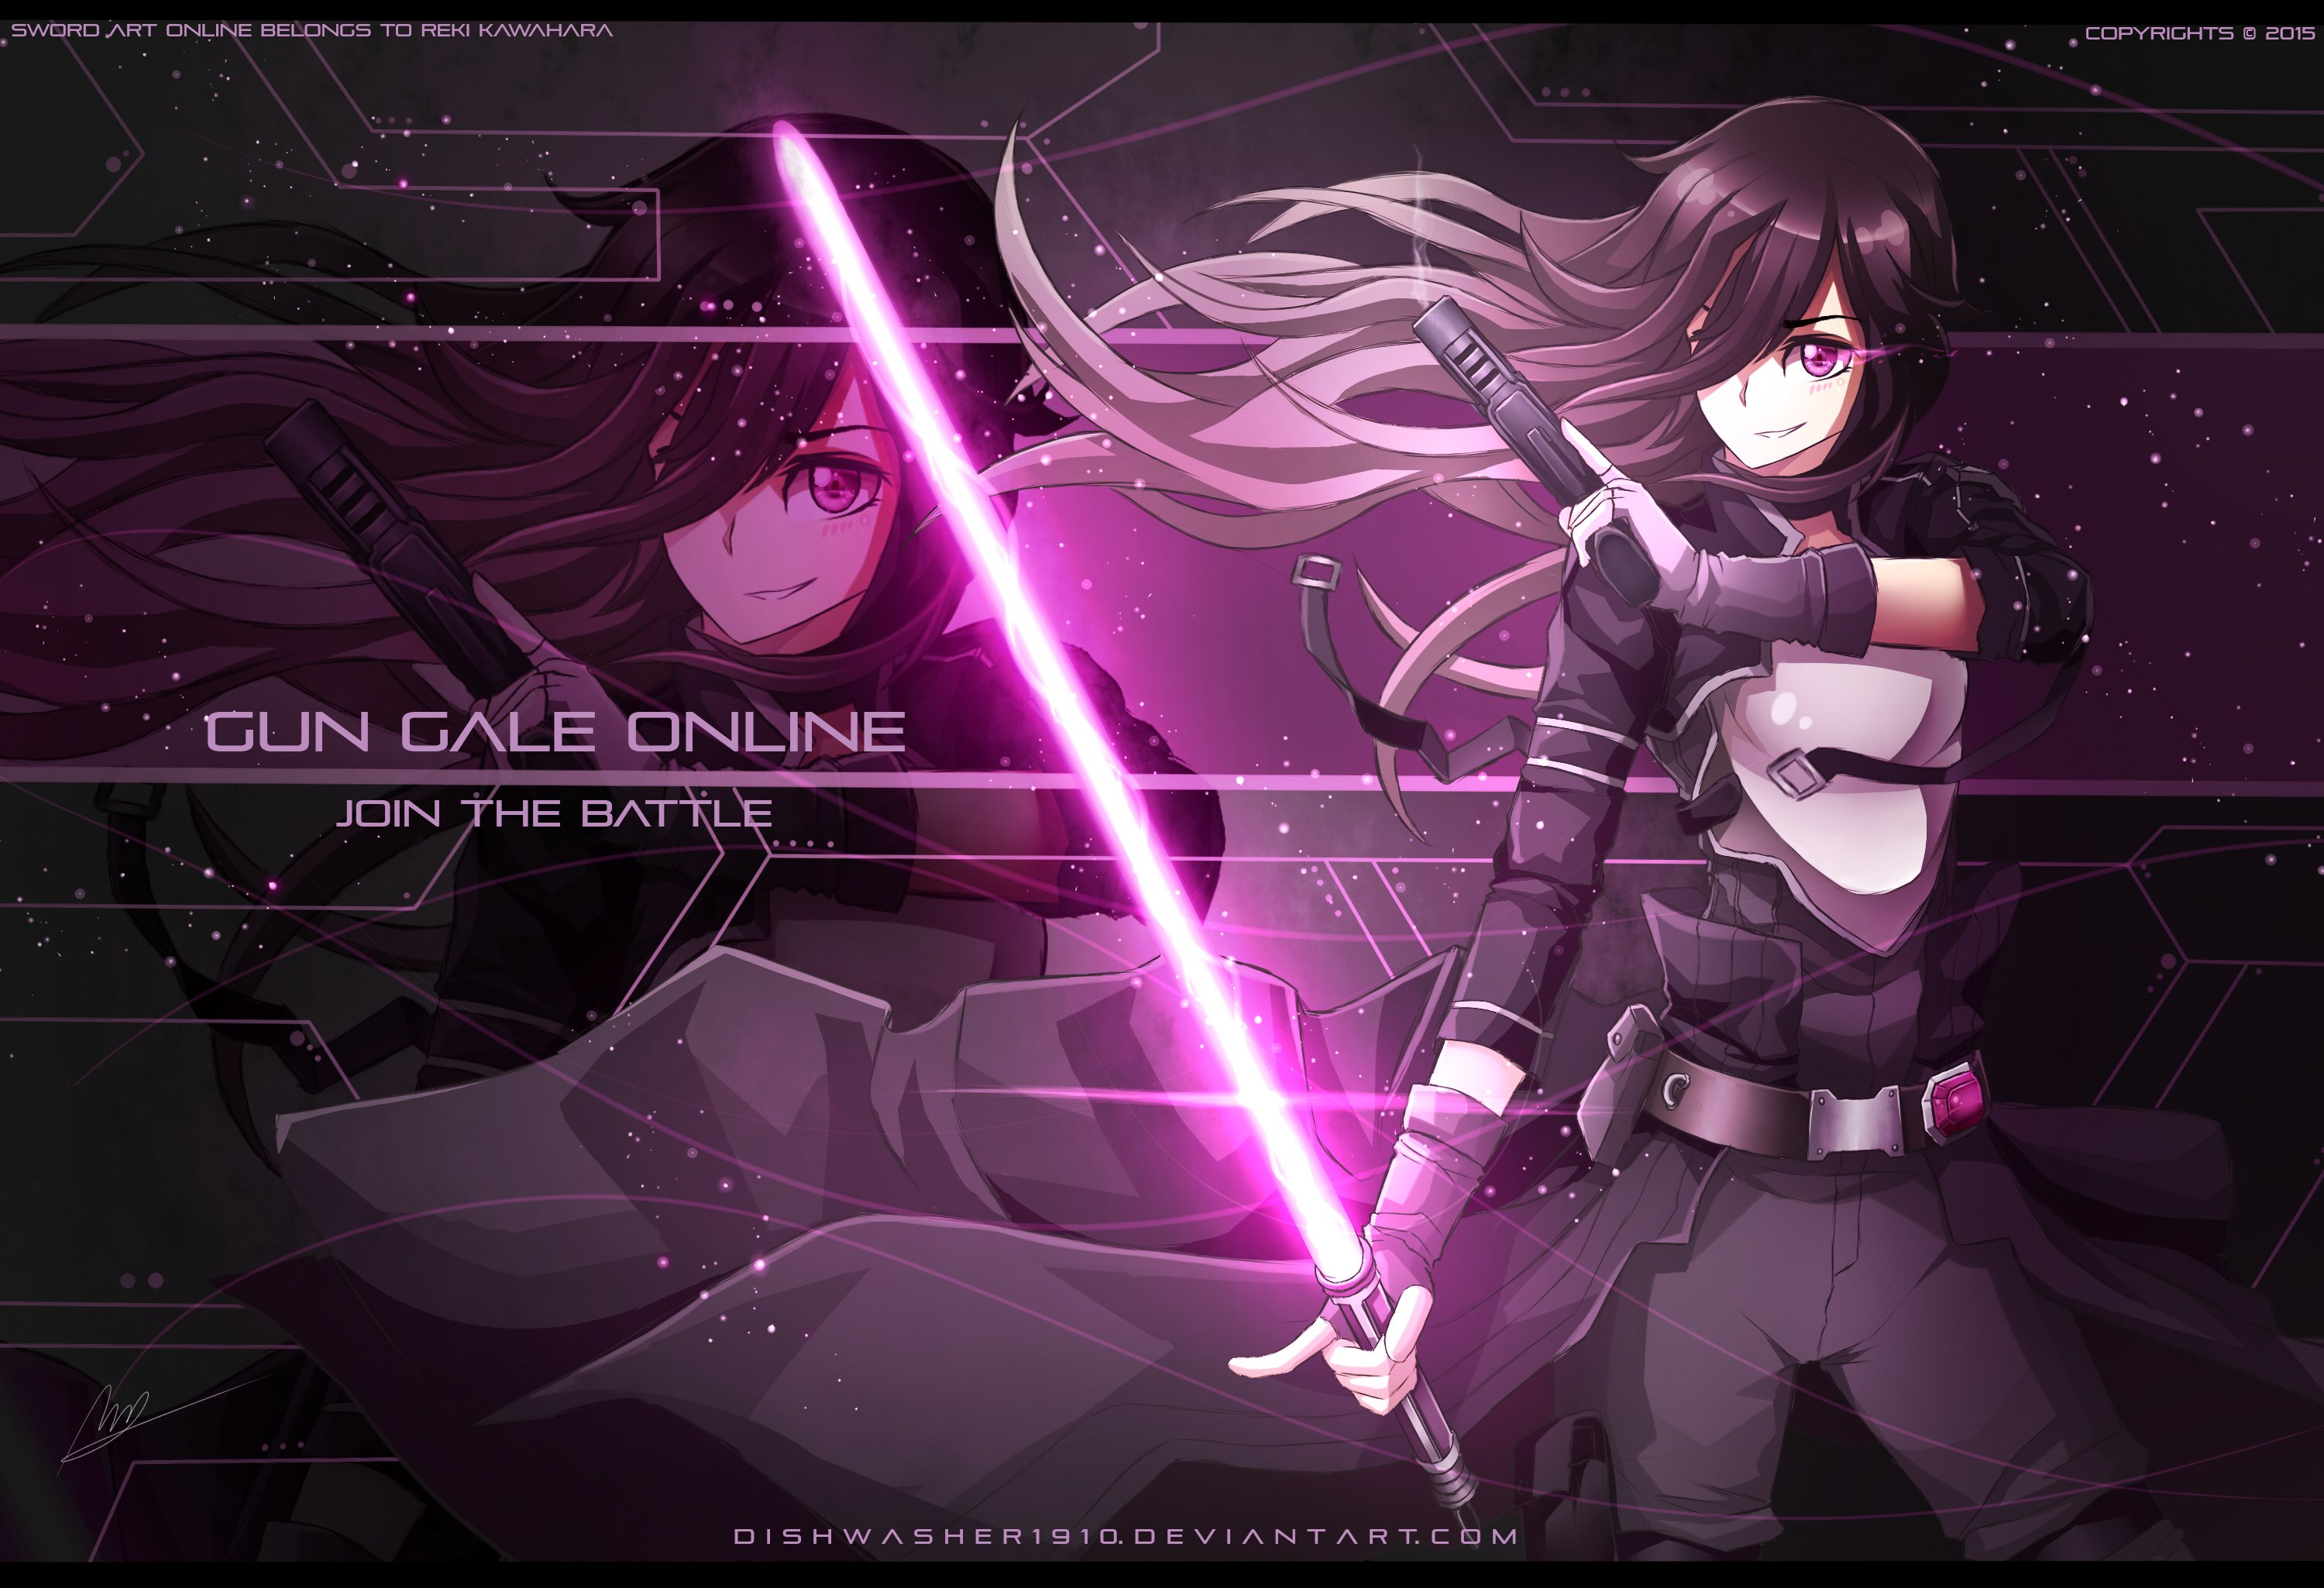 swort art online wallpaper